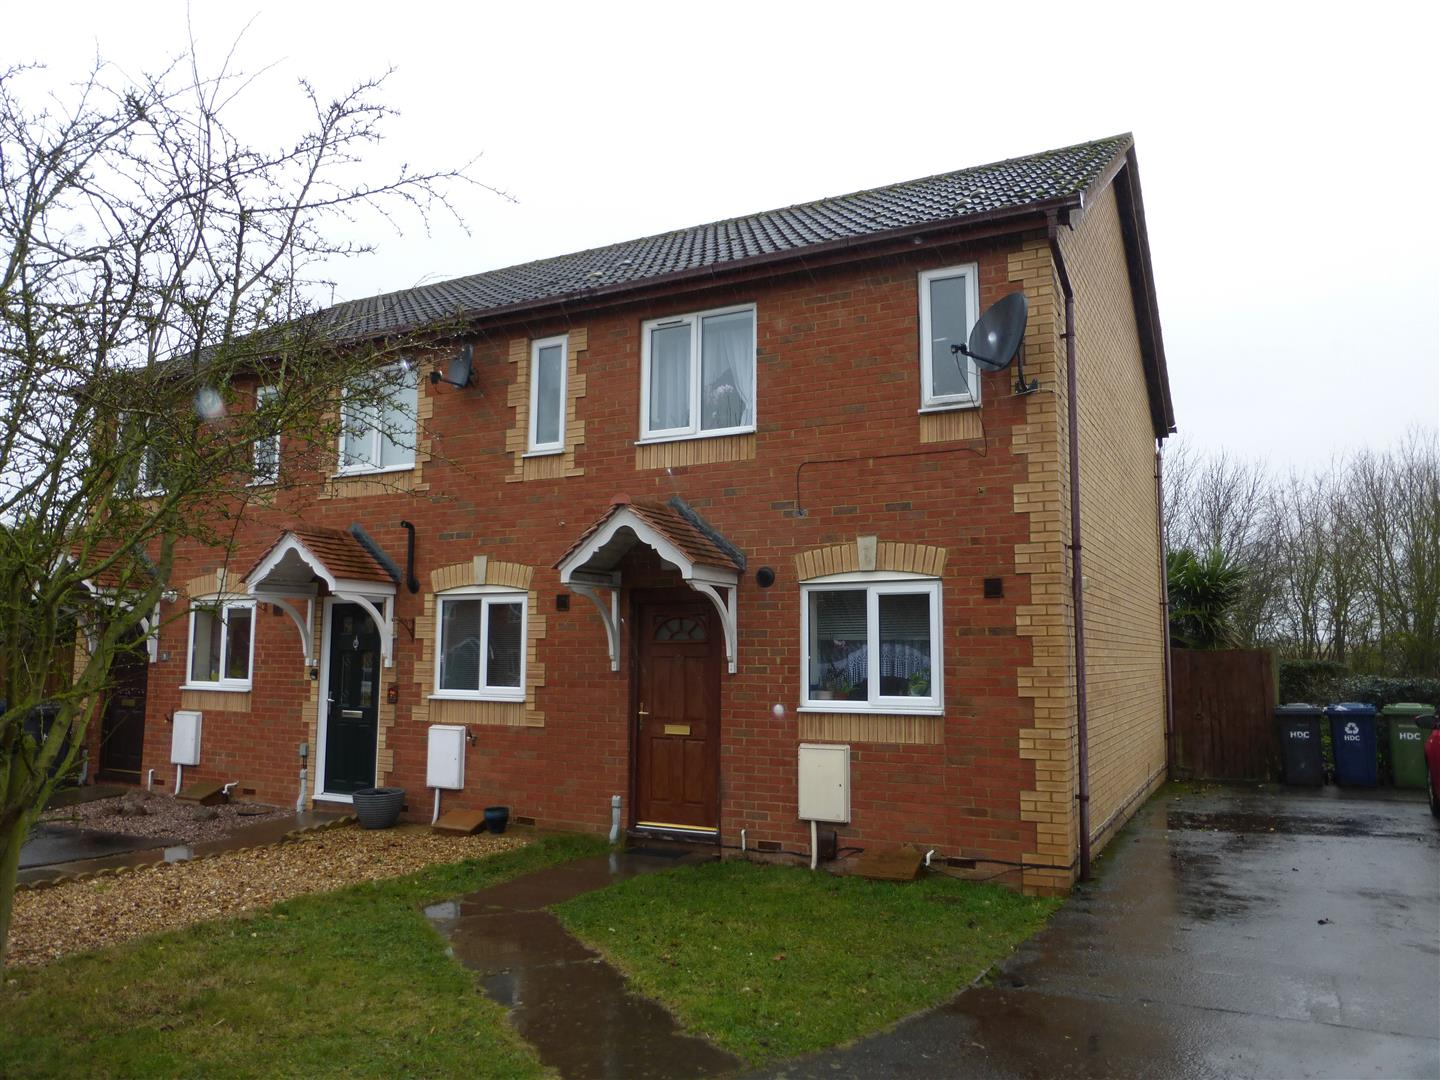 2 Bedroom Property For Sale In Wood View Brampton Huntingdon Pe28 Regal Park Letting And Estate Agent In Peterborough And Stamford Serving Cambridgeshire And Surrounding Areas Regal Park Peterborough S Estate Agent